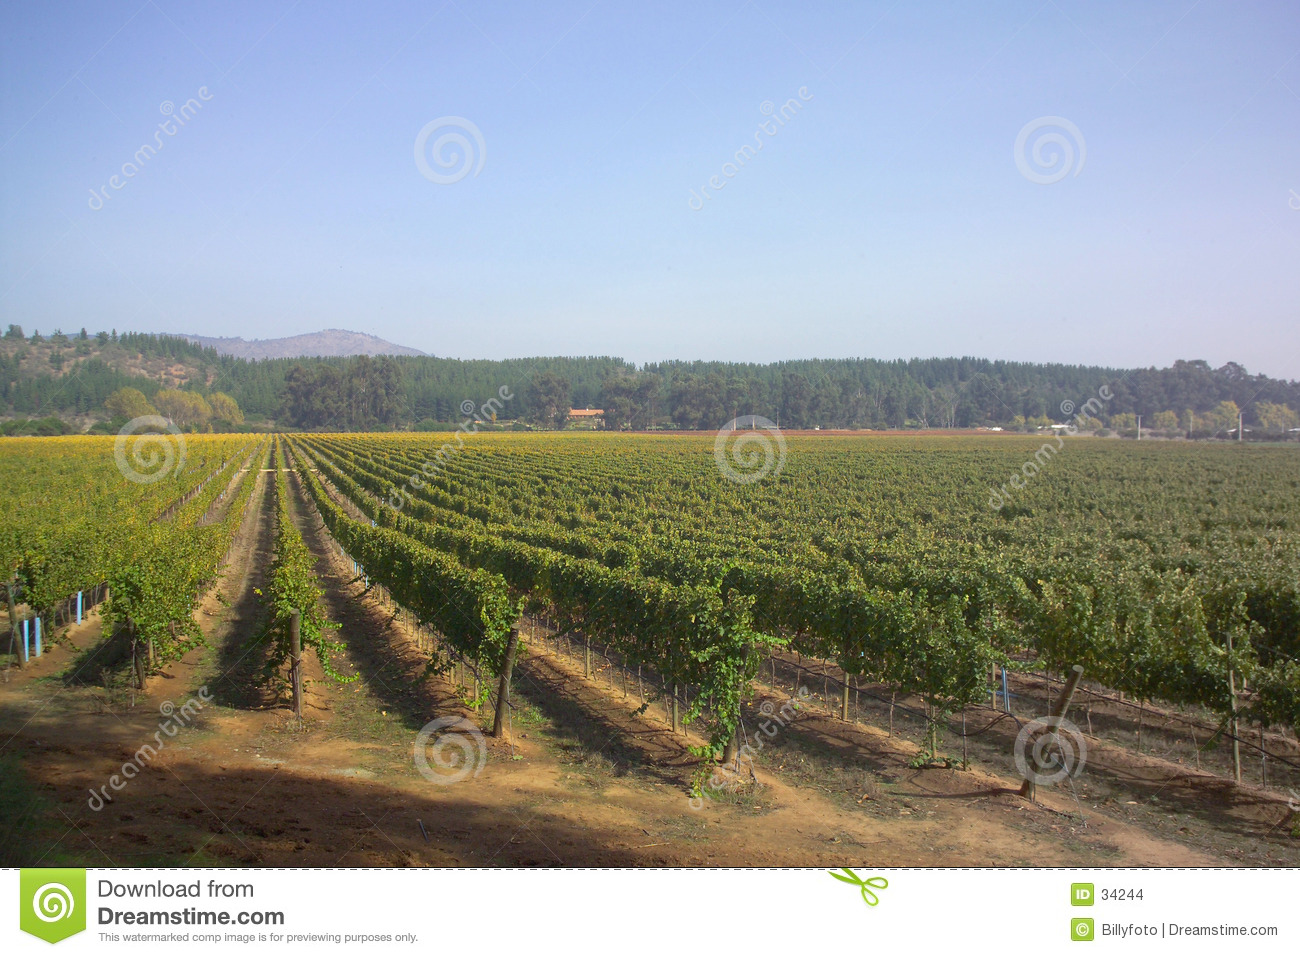 Vineyard in Chile 1